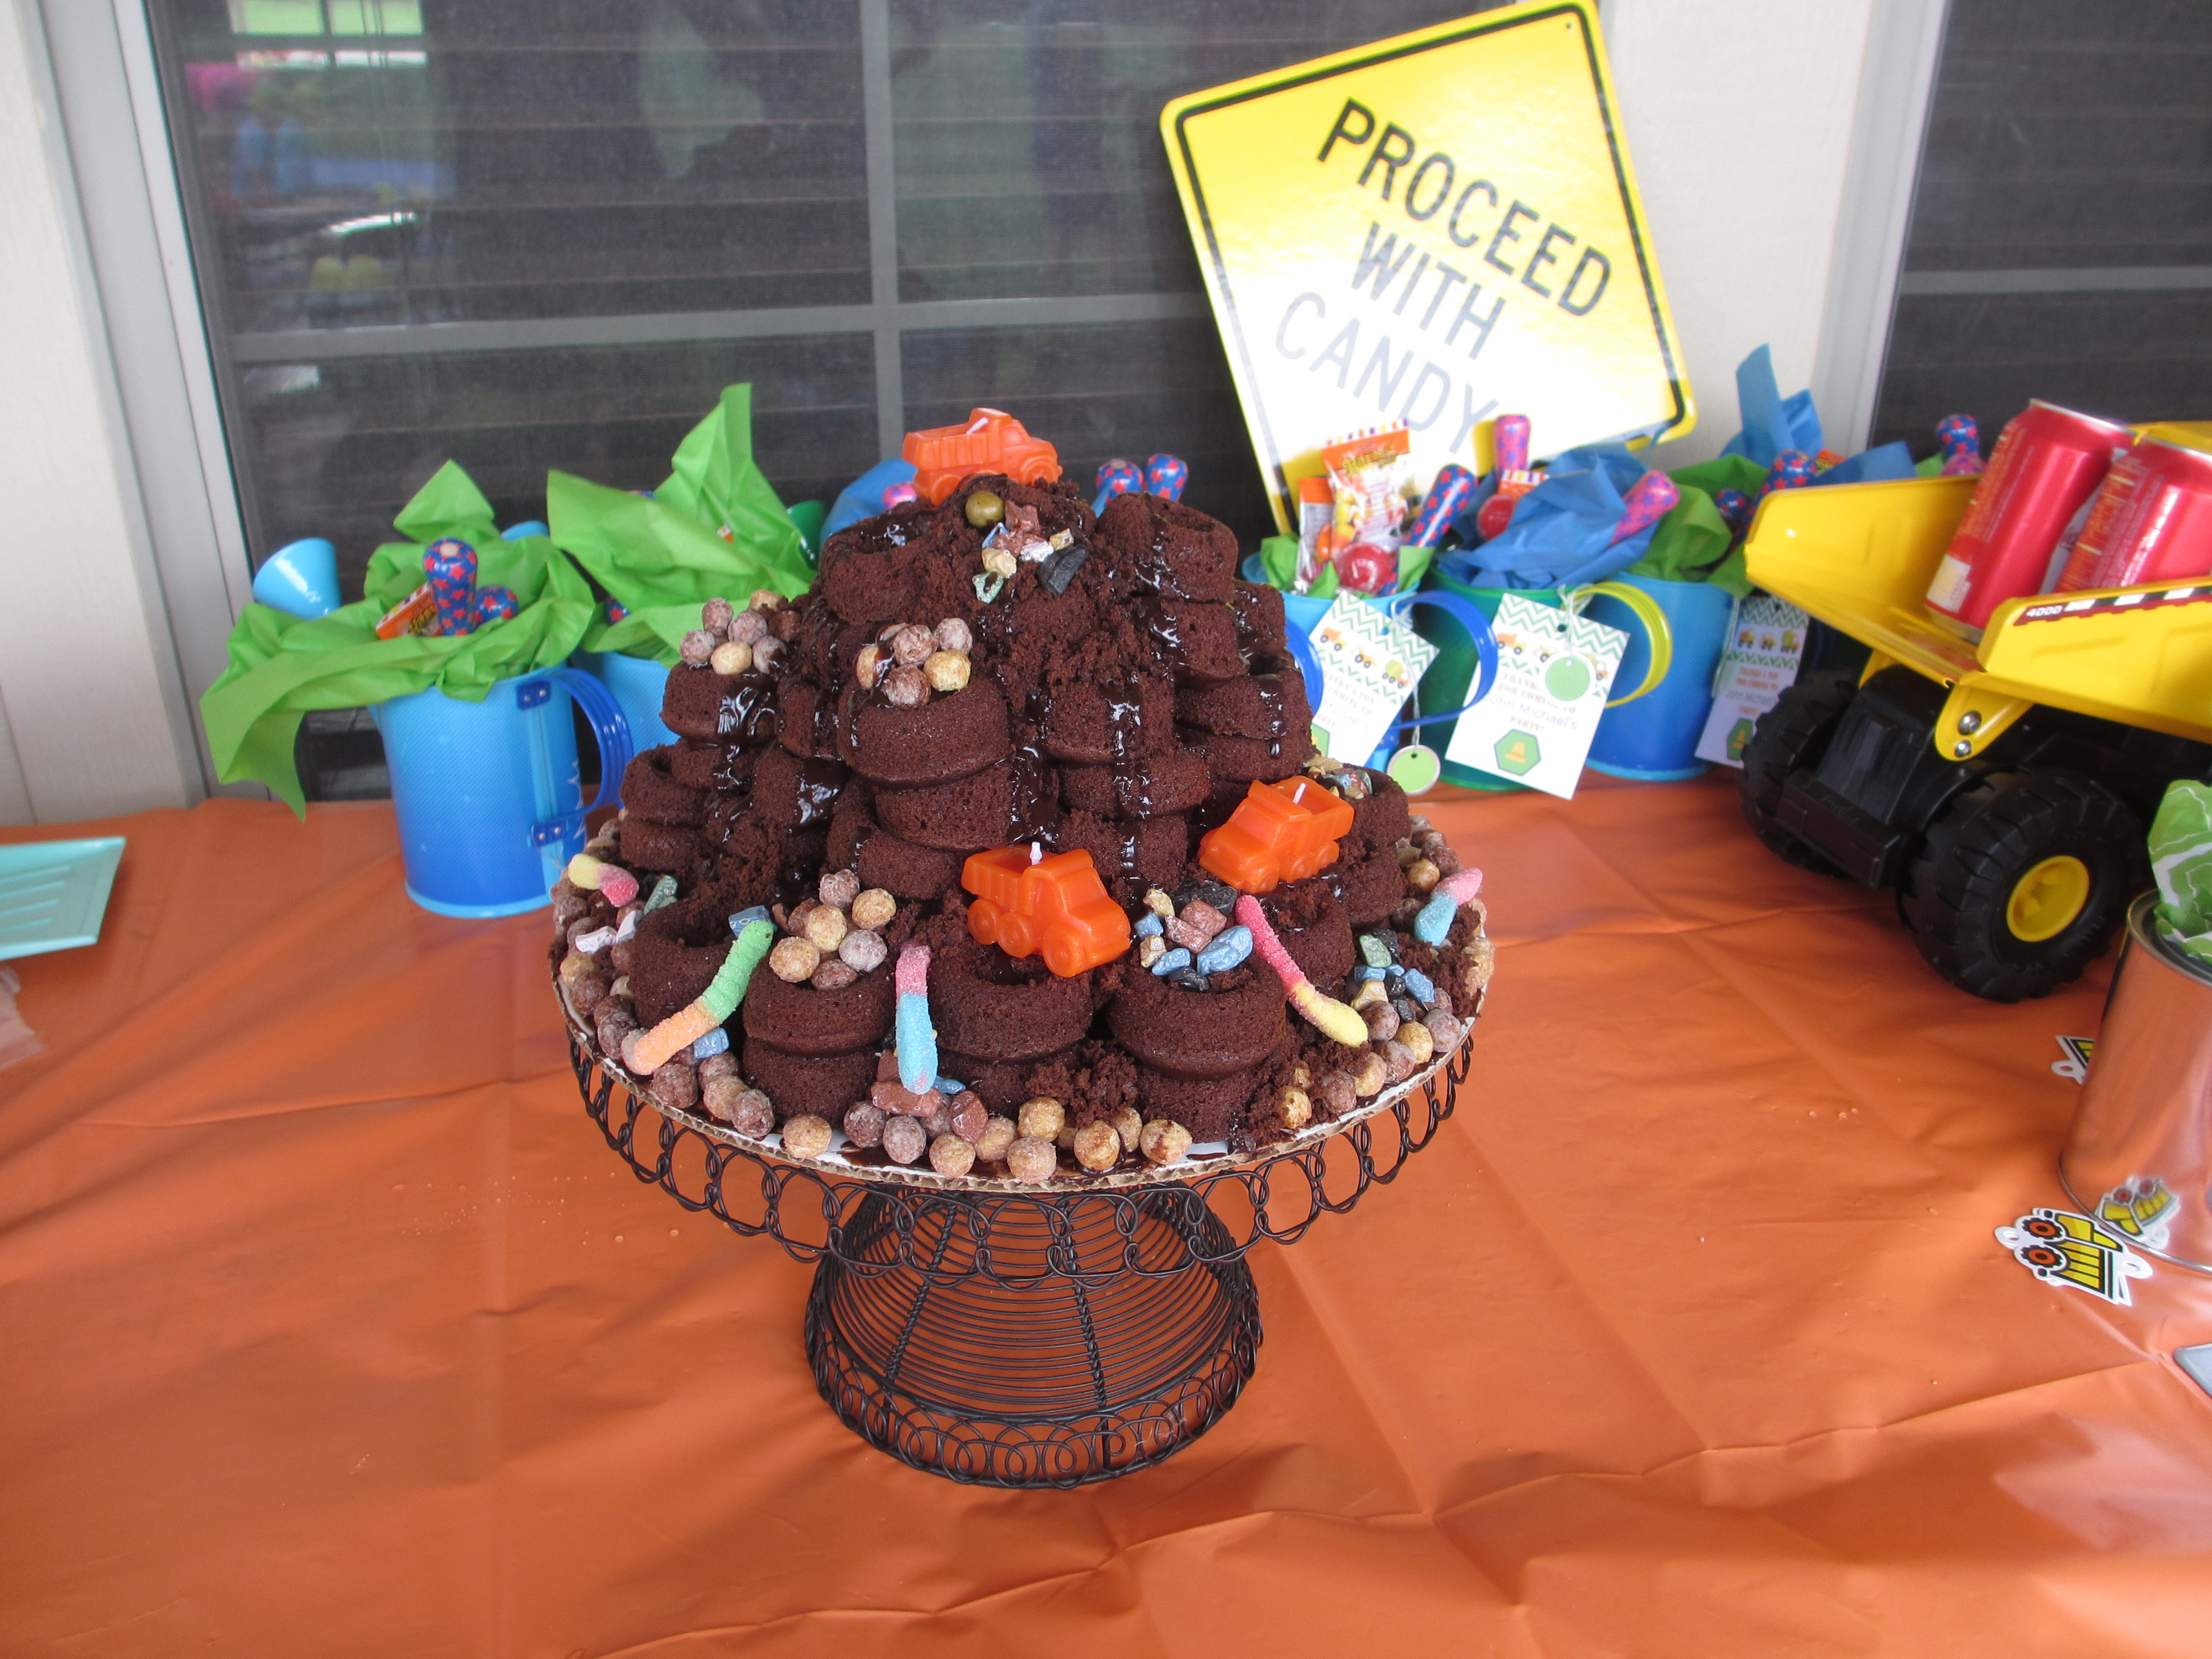 For My Nephews 2nd Birthday Party Sister Planned Him A Construction Theme I Wanted To Create One Of Kind Cake With His Chocolate Mini